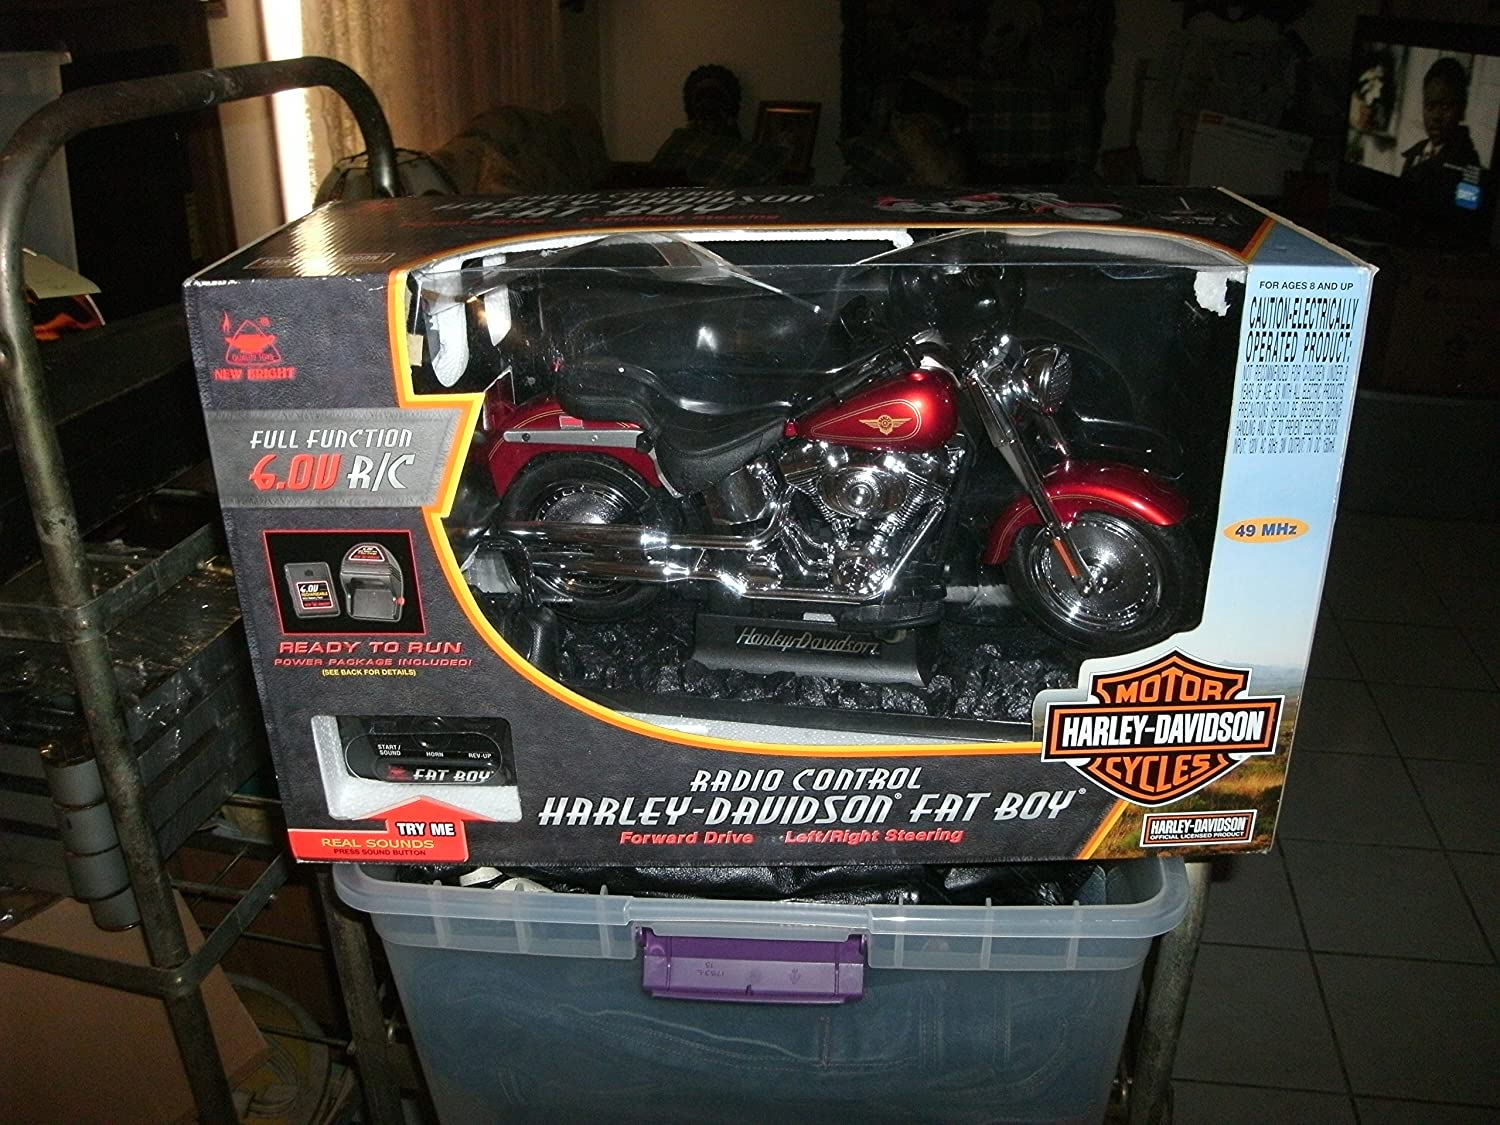 Top 10 Best Remote Control Motorcycles (2020 Reviews & Buying Guide) 1